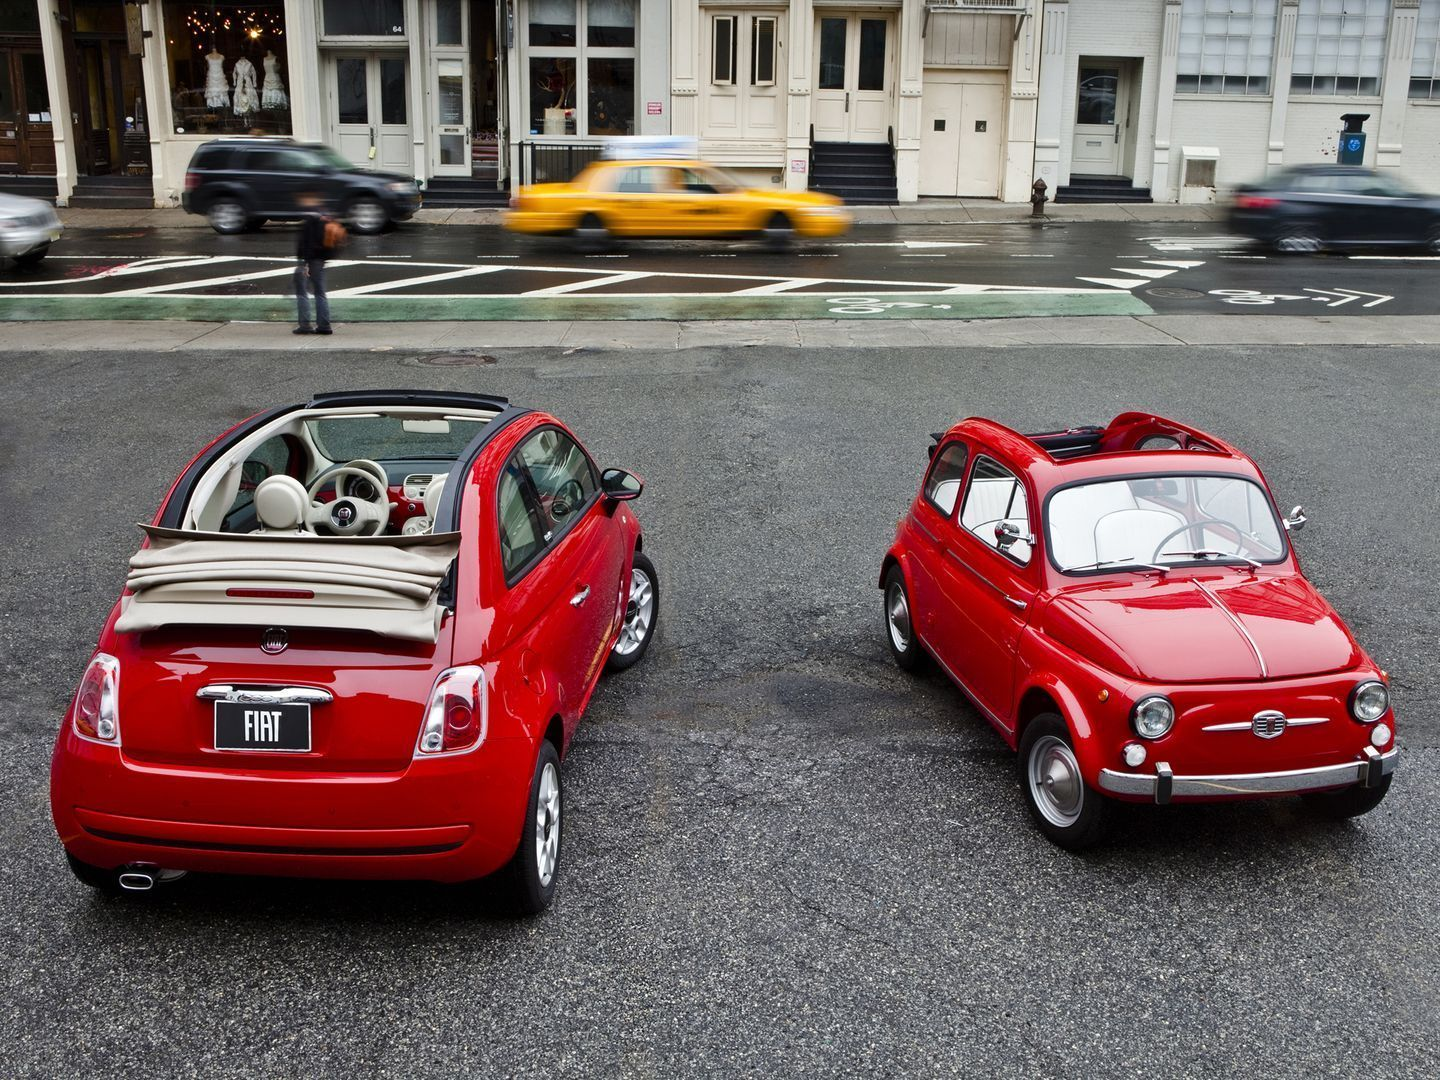 This color fiat 500 commanded a lot of attention at the recent pittsburgh auto show the dash is the same color as the outside when seen in person